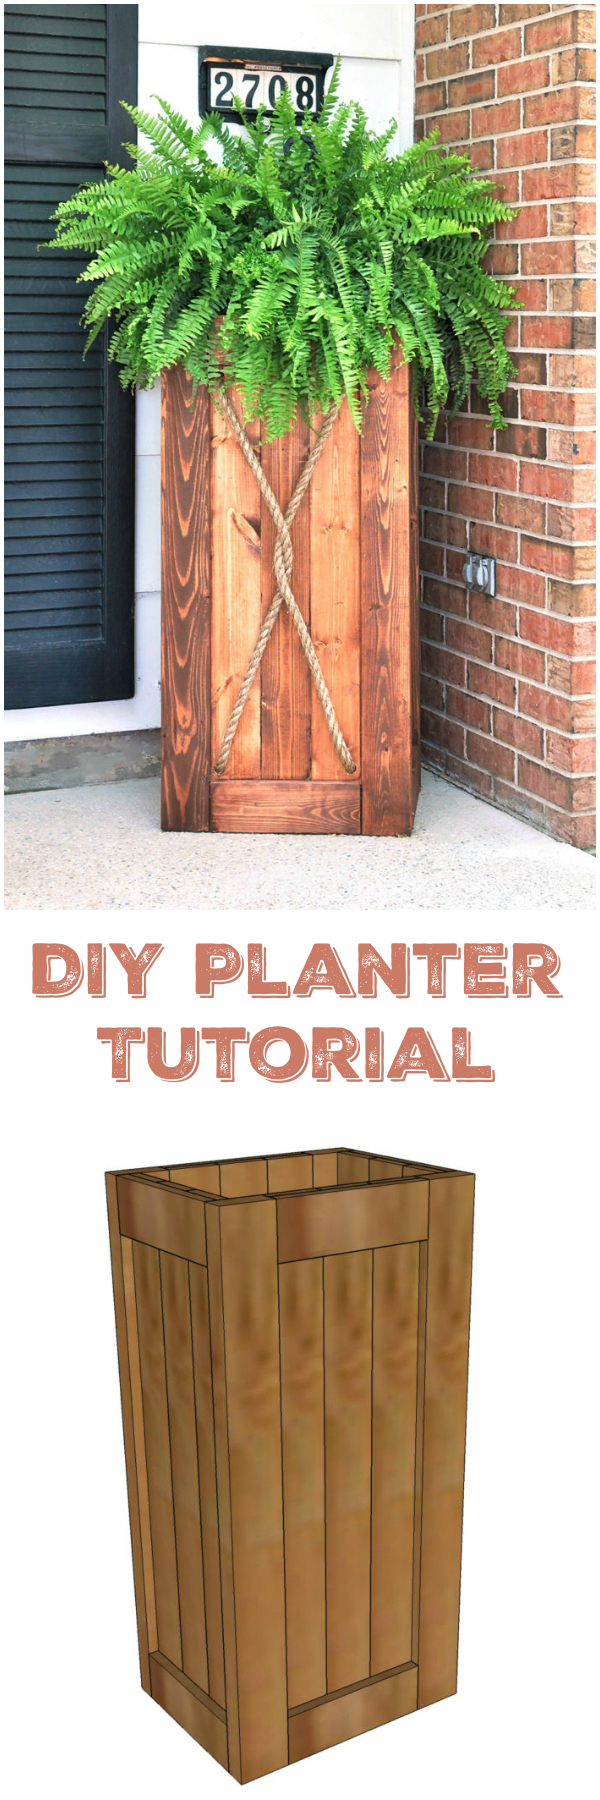 15 cheap and stunning DIY outdoor furniture ideas DIY Planter Tutorial